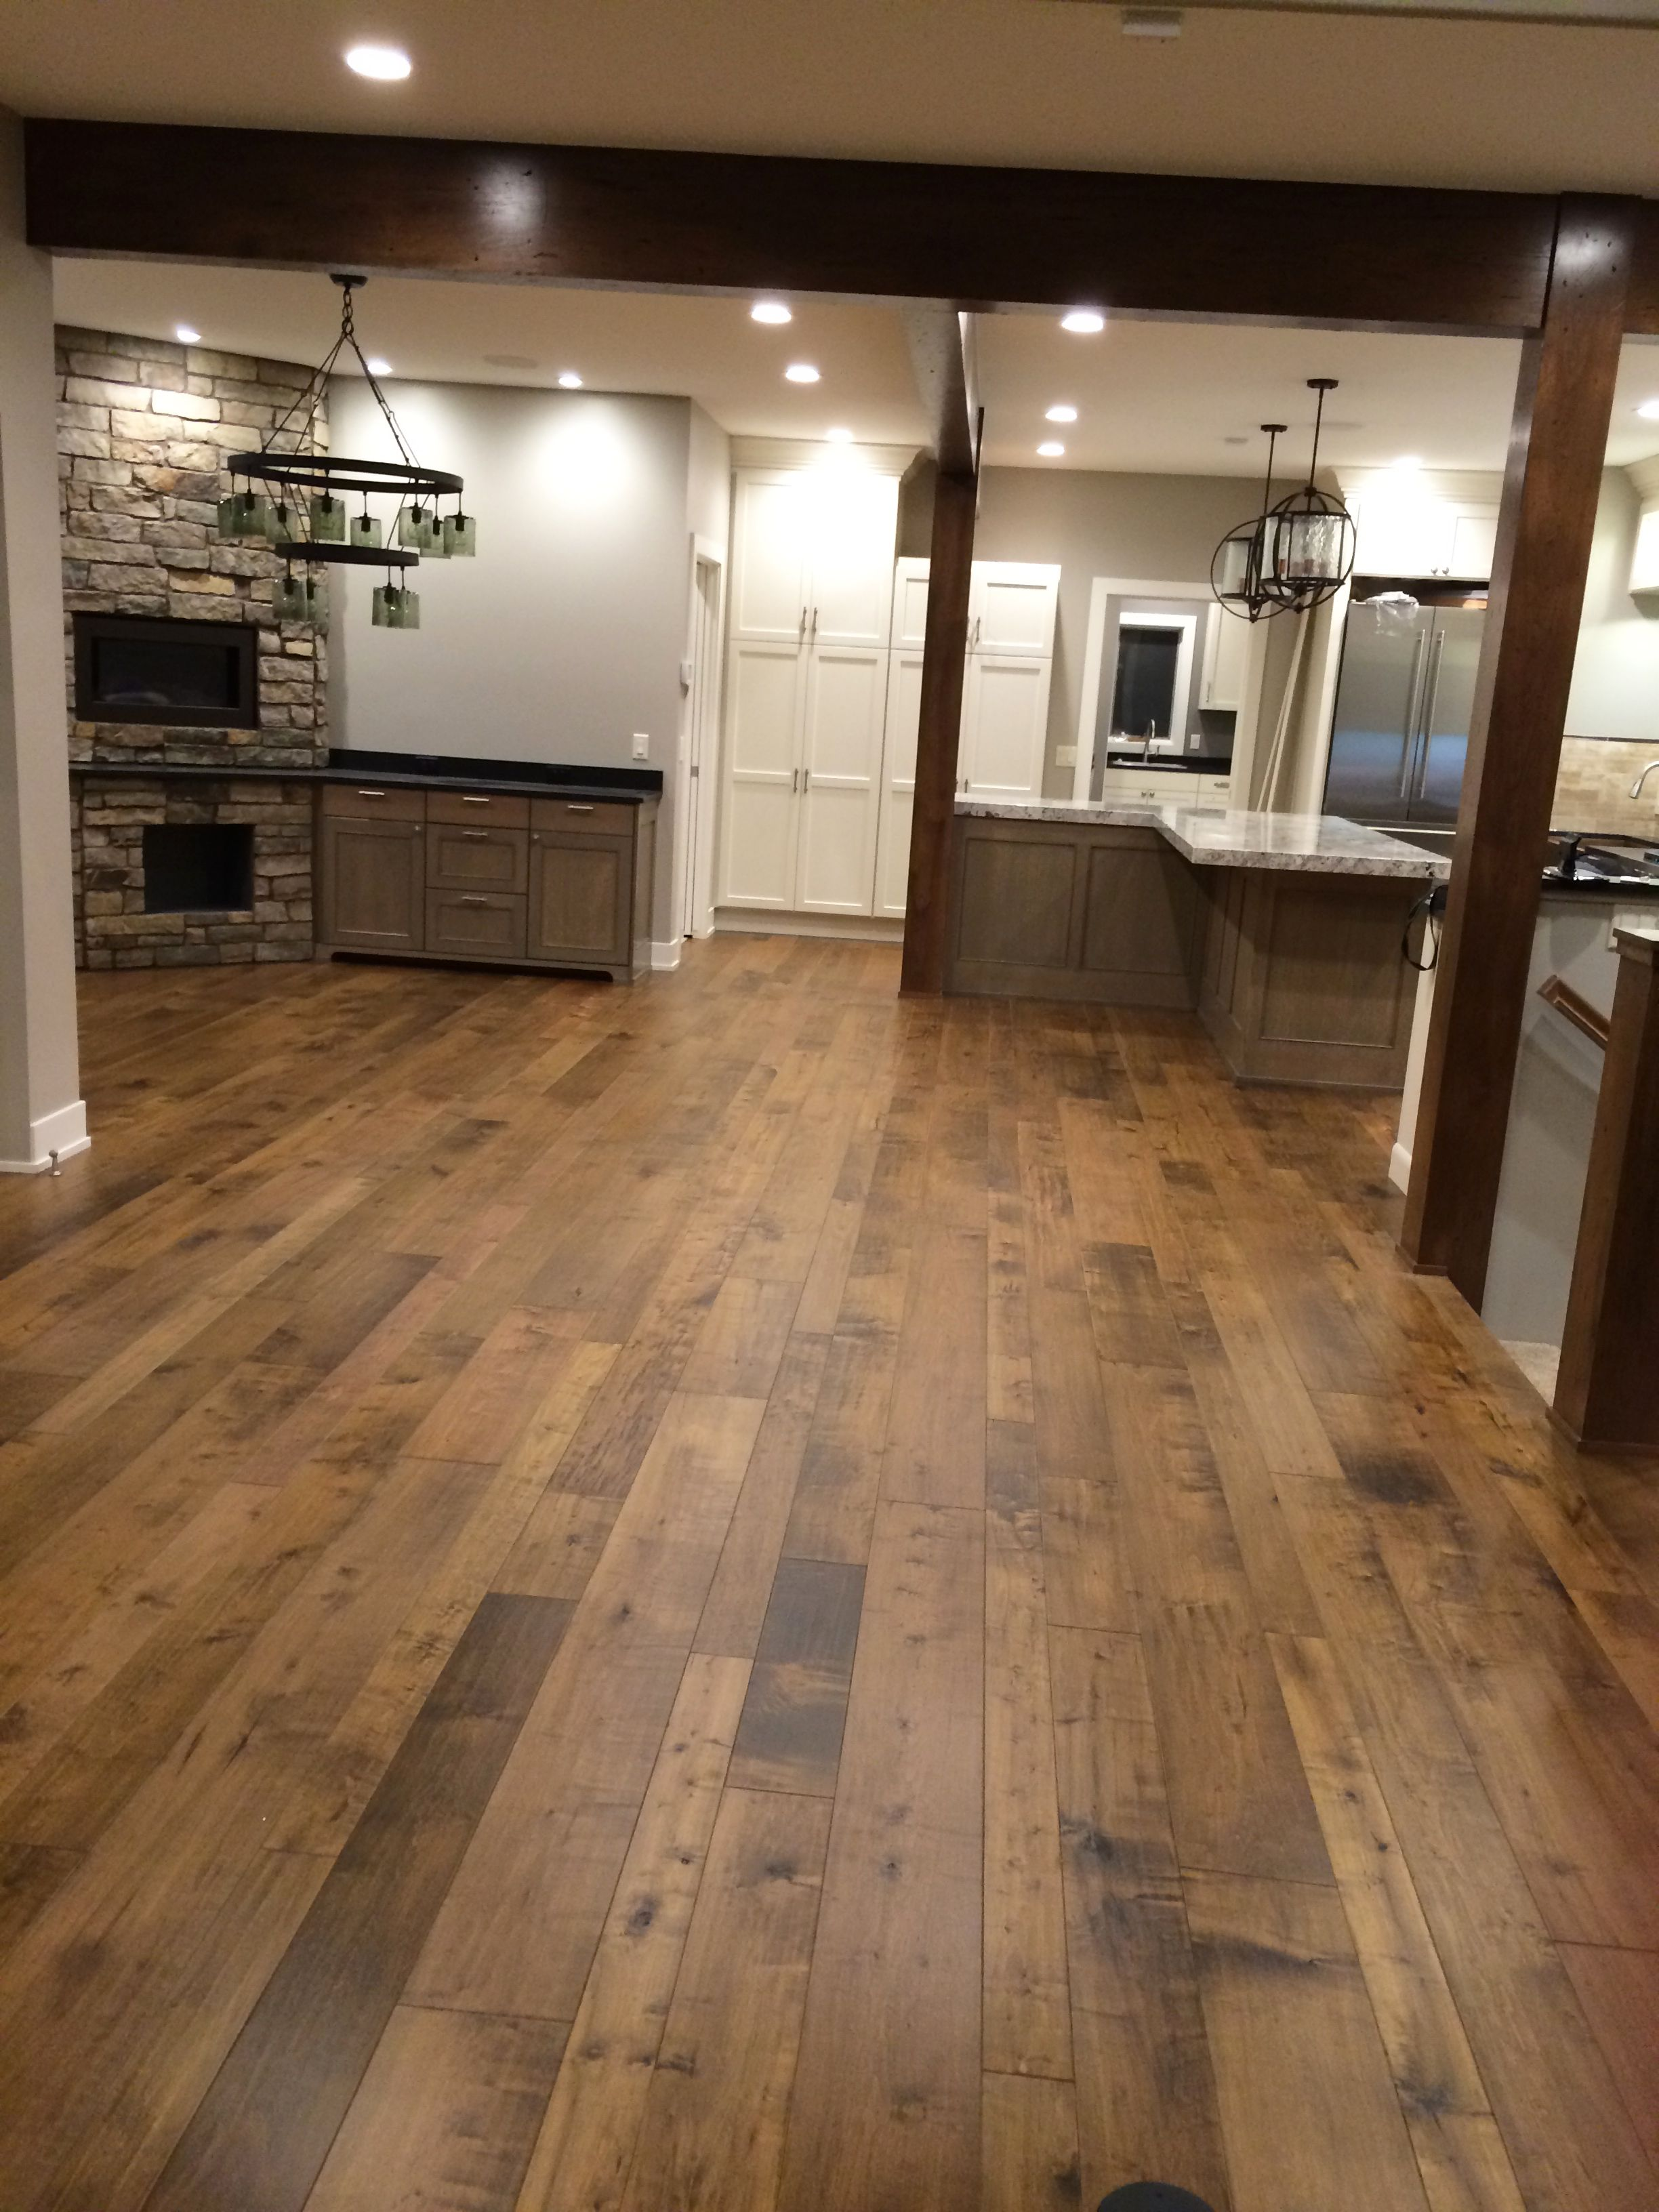 Engineered Hardwood Floors The Were Purchased From Carpets Direct And Installed By Fulton Construction